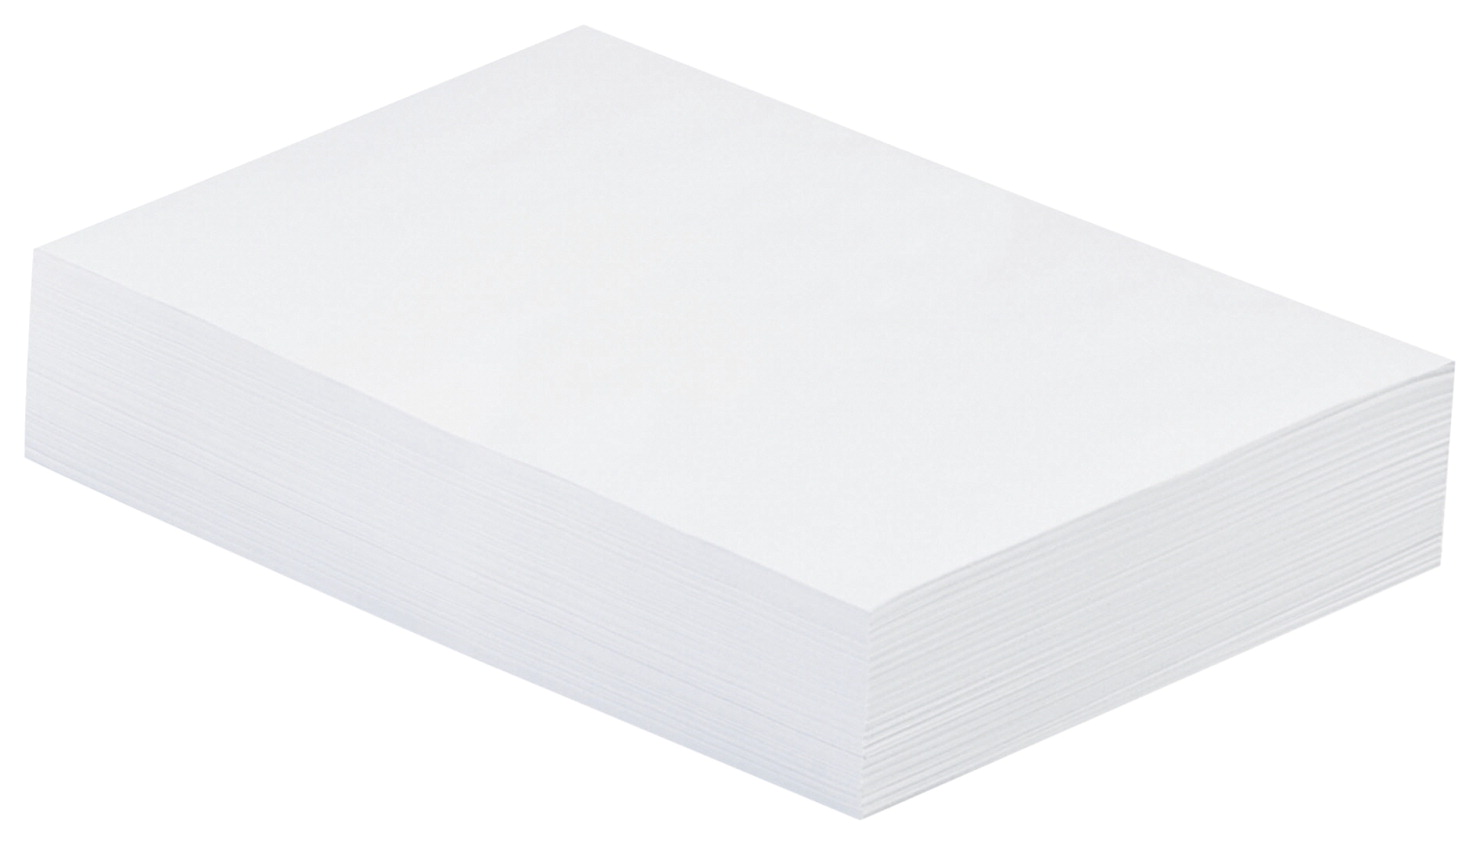 Ucreate Mixed-Media Paper, 80 lb., 12 x 18 Inches, Natural White, 500 Sheets